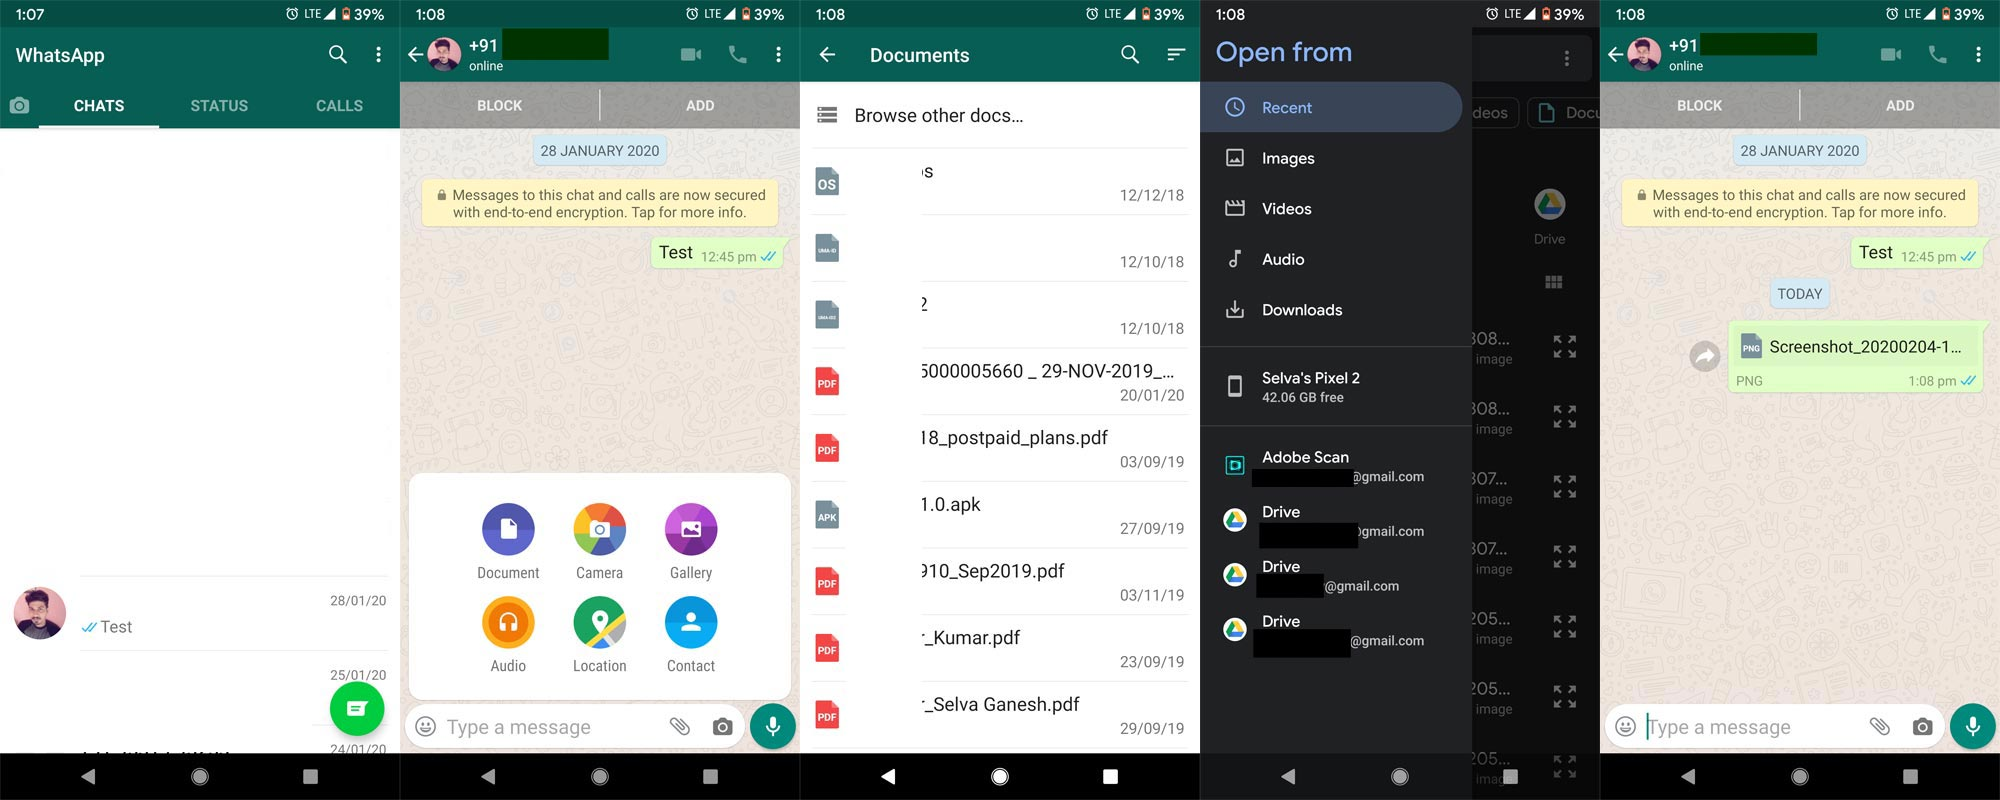 Send Original quality image as document in Whatsapp